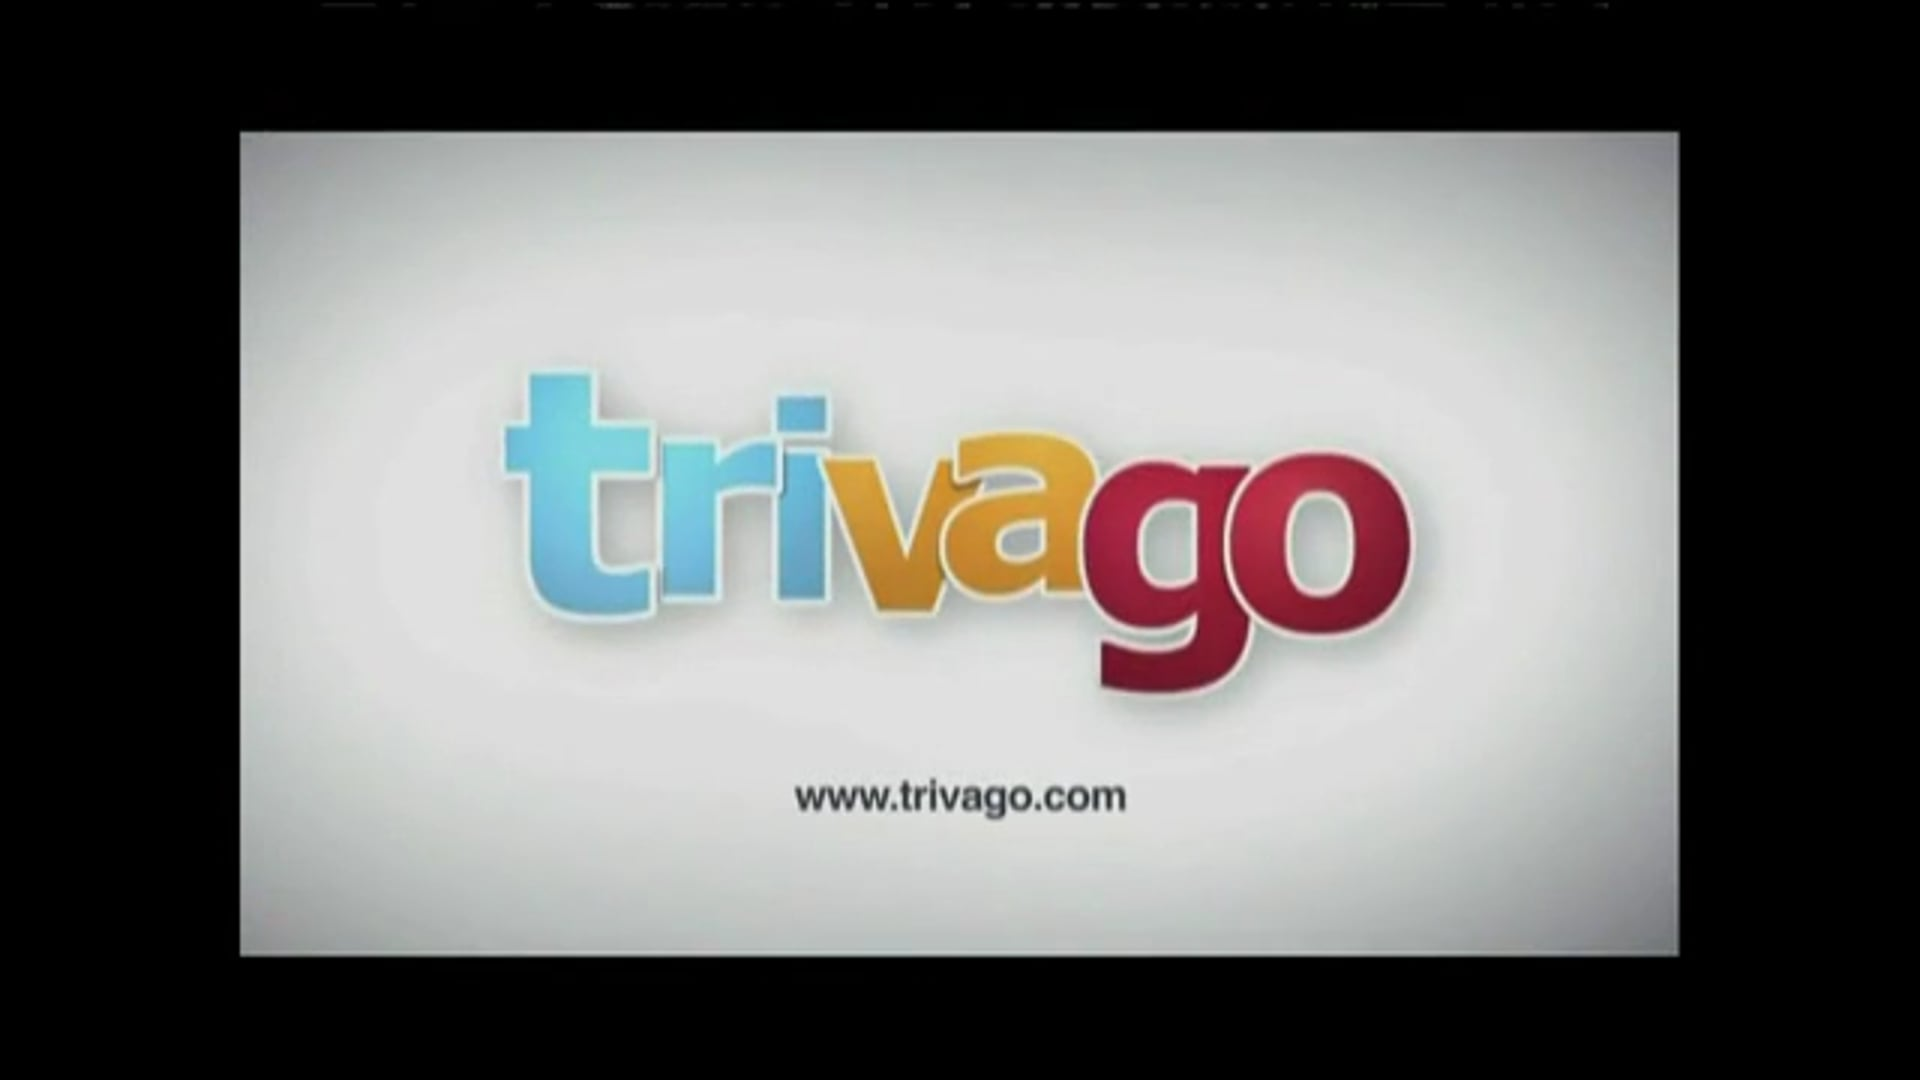 Commercial: trivago